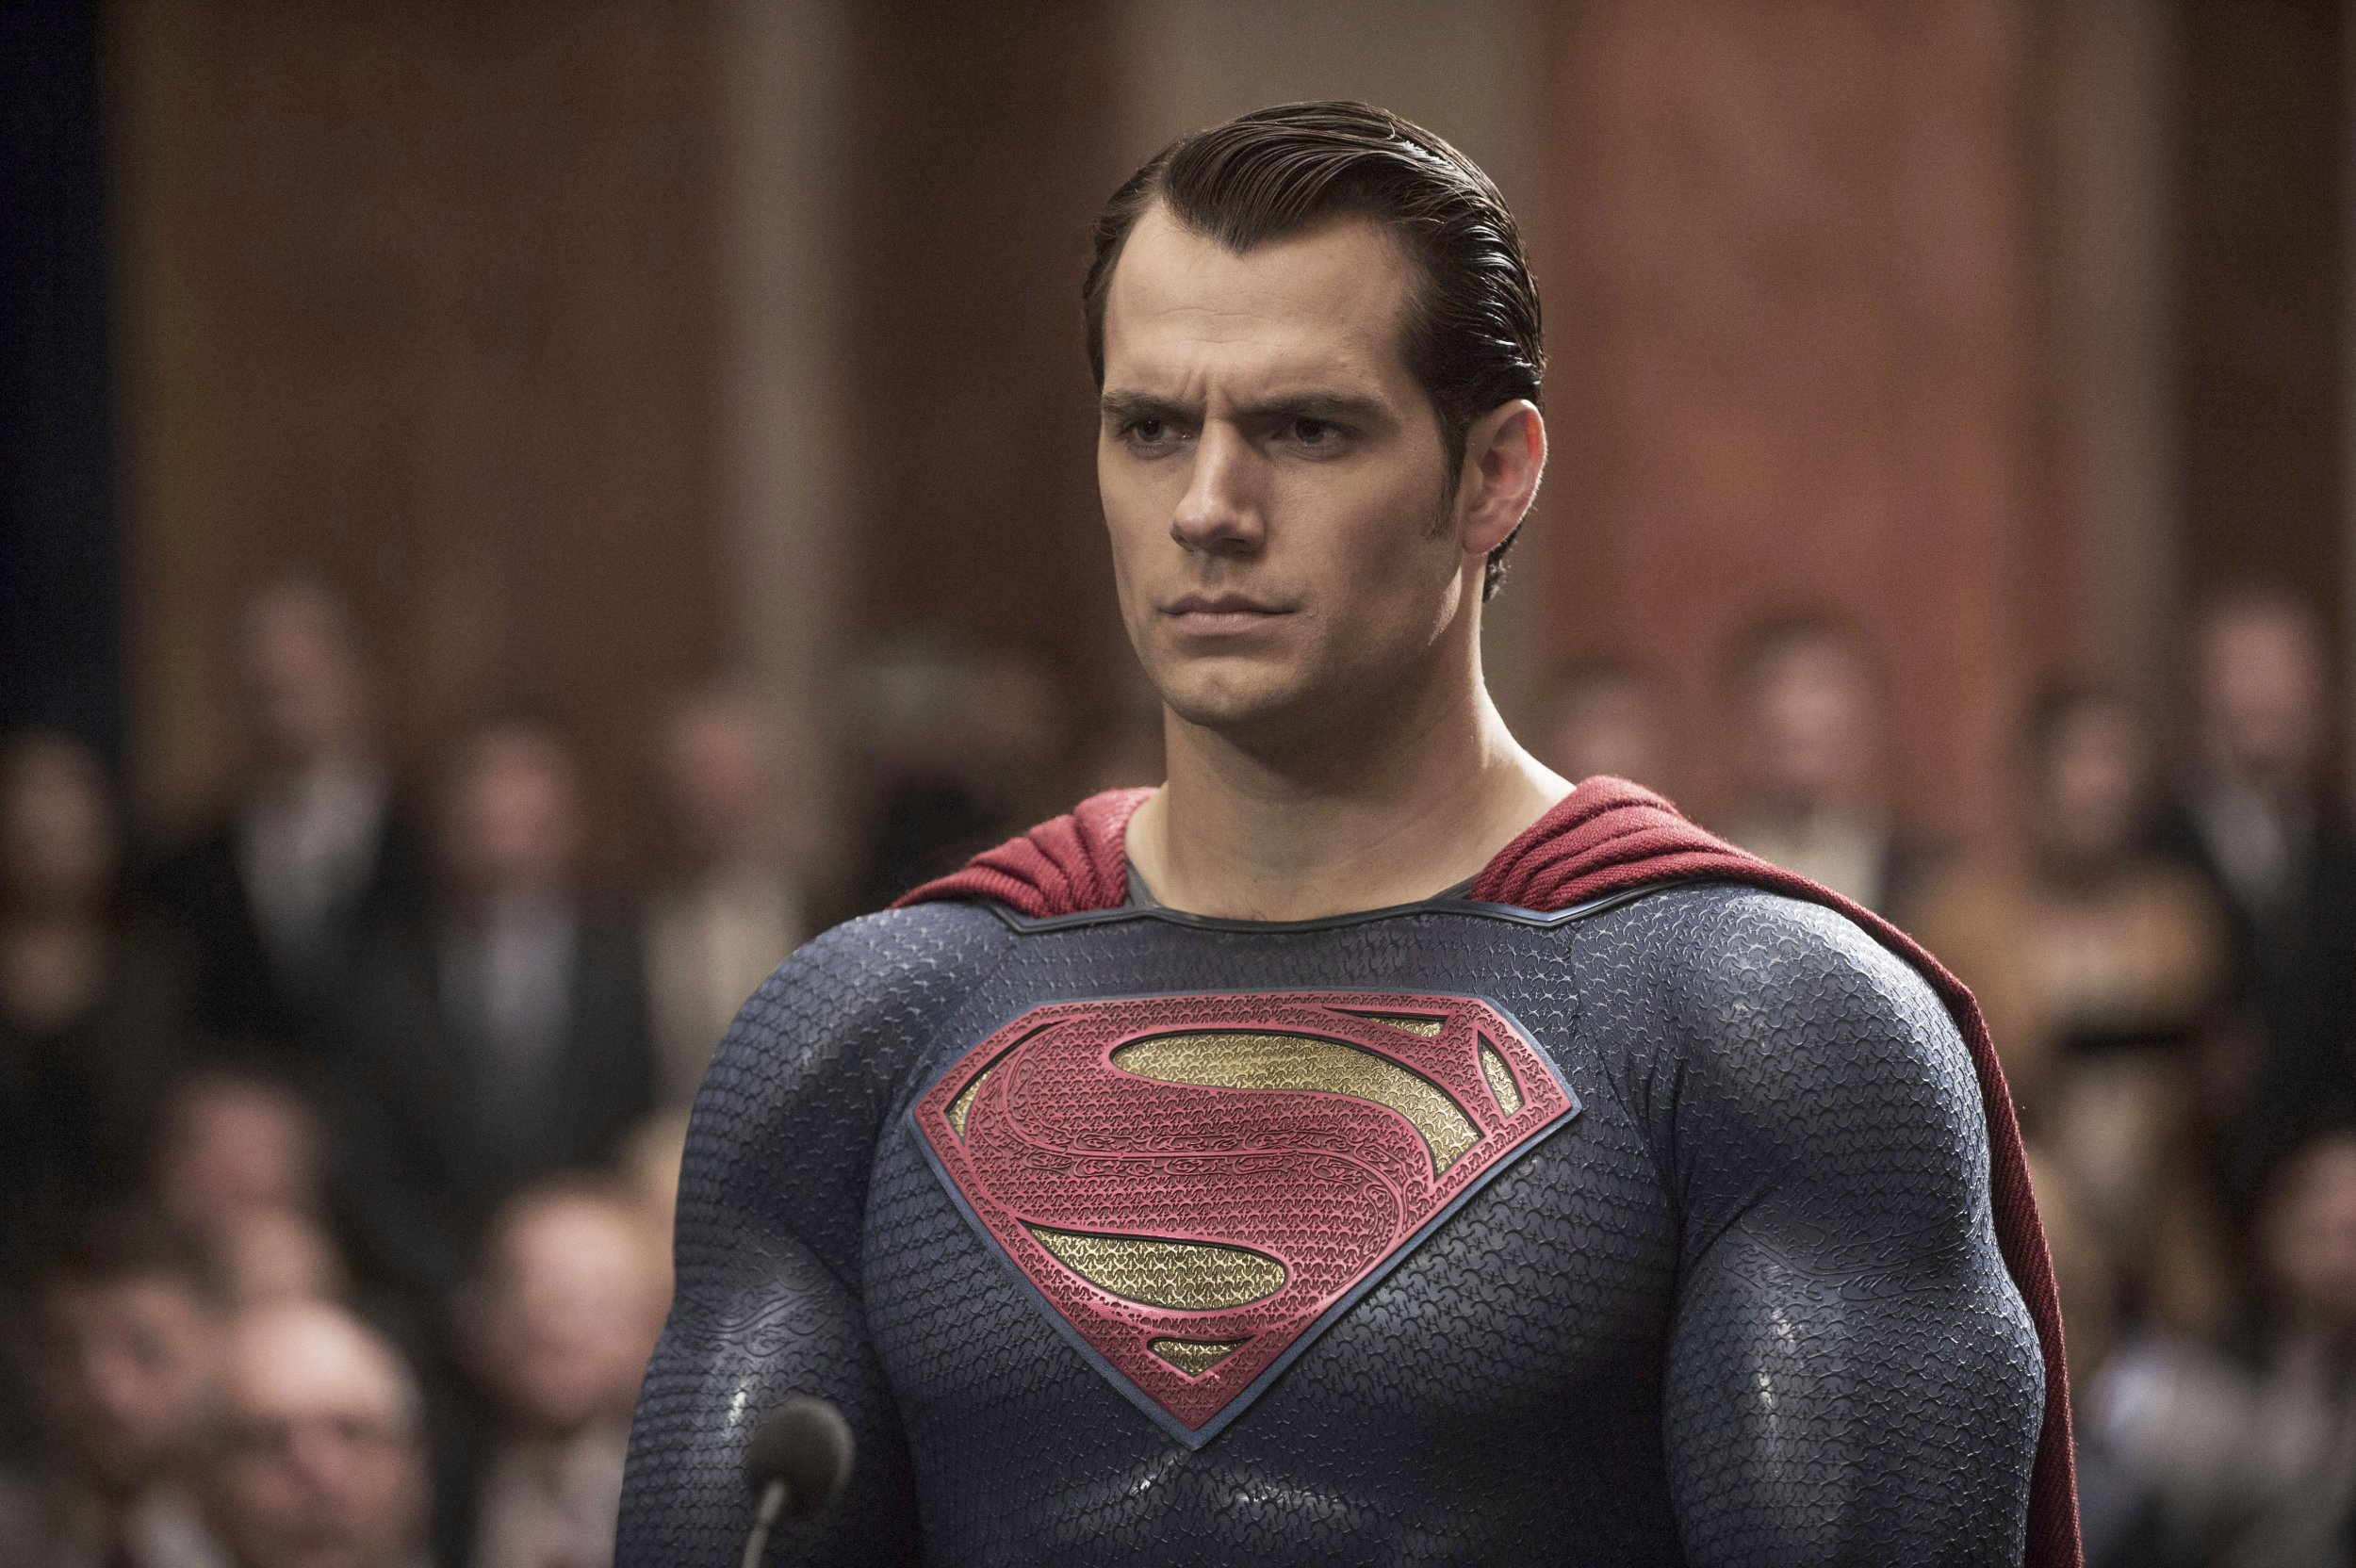 Henry Cavill hangs up Superman's red cape as DC Comics hit the 'reset' button